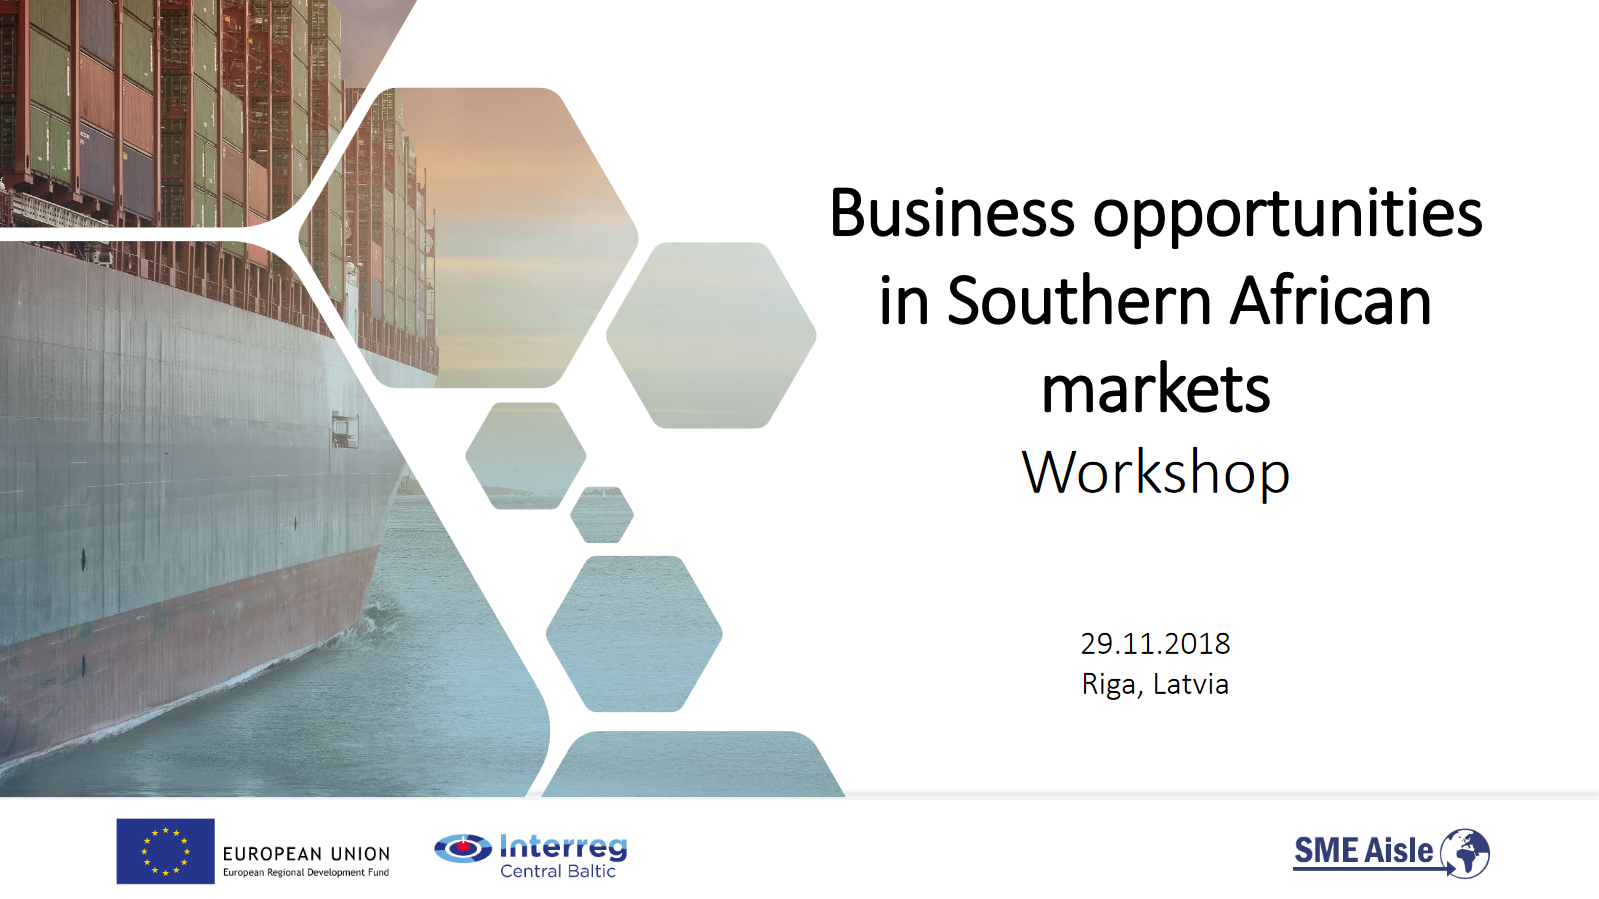 Click to open Business opportunities in Southern African markets presentation.